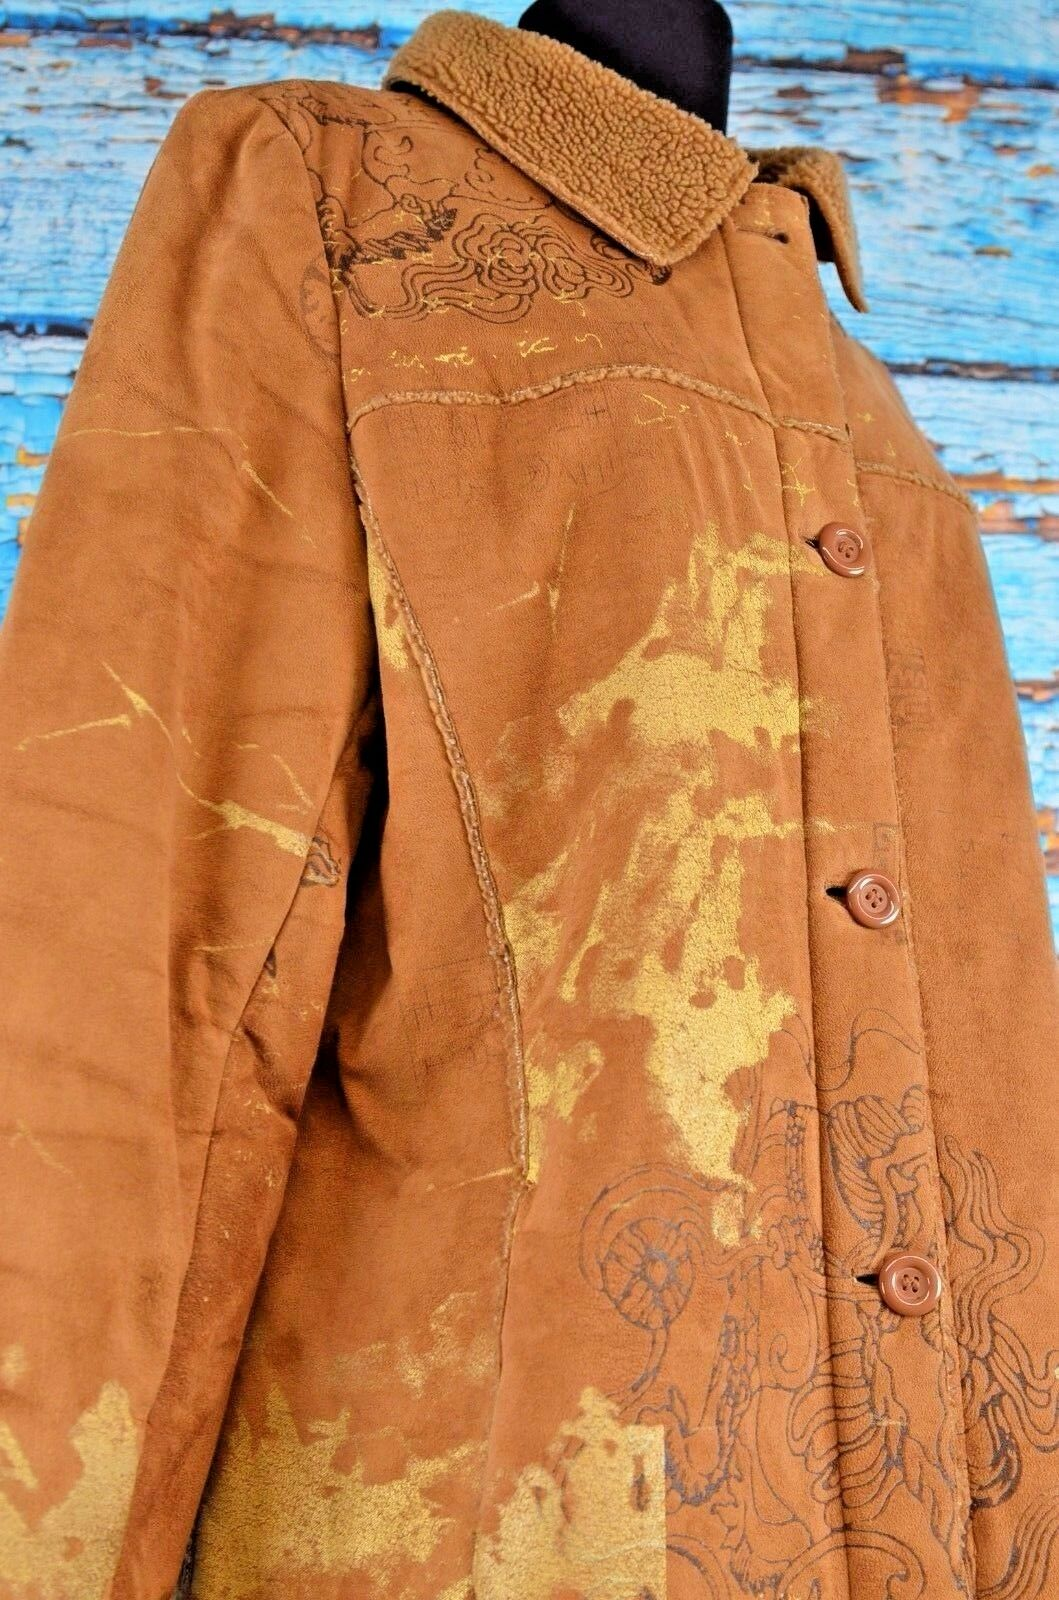 Mechant Women's Coat Size Medium Brown Long Artsy Boho Boho Boho Quirky Cute Warm Casual 4fe2ea